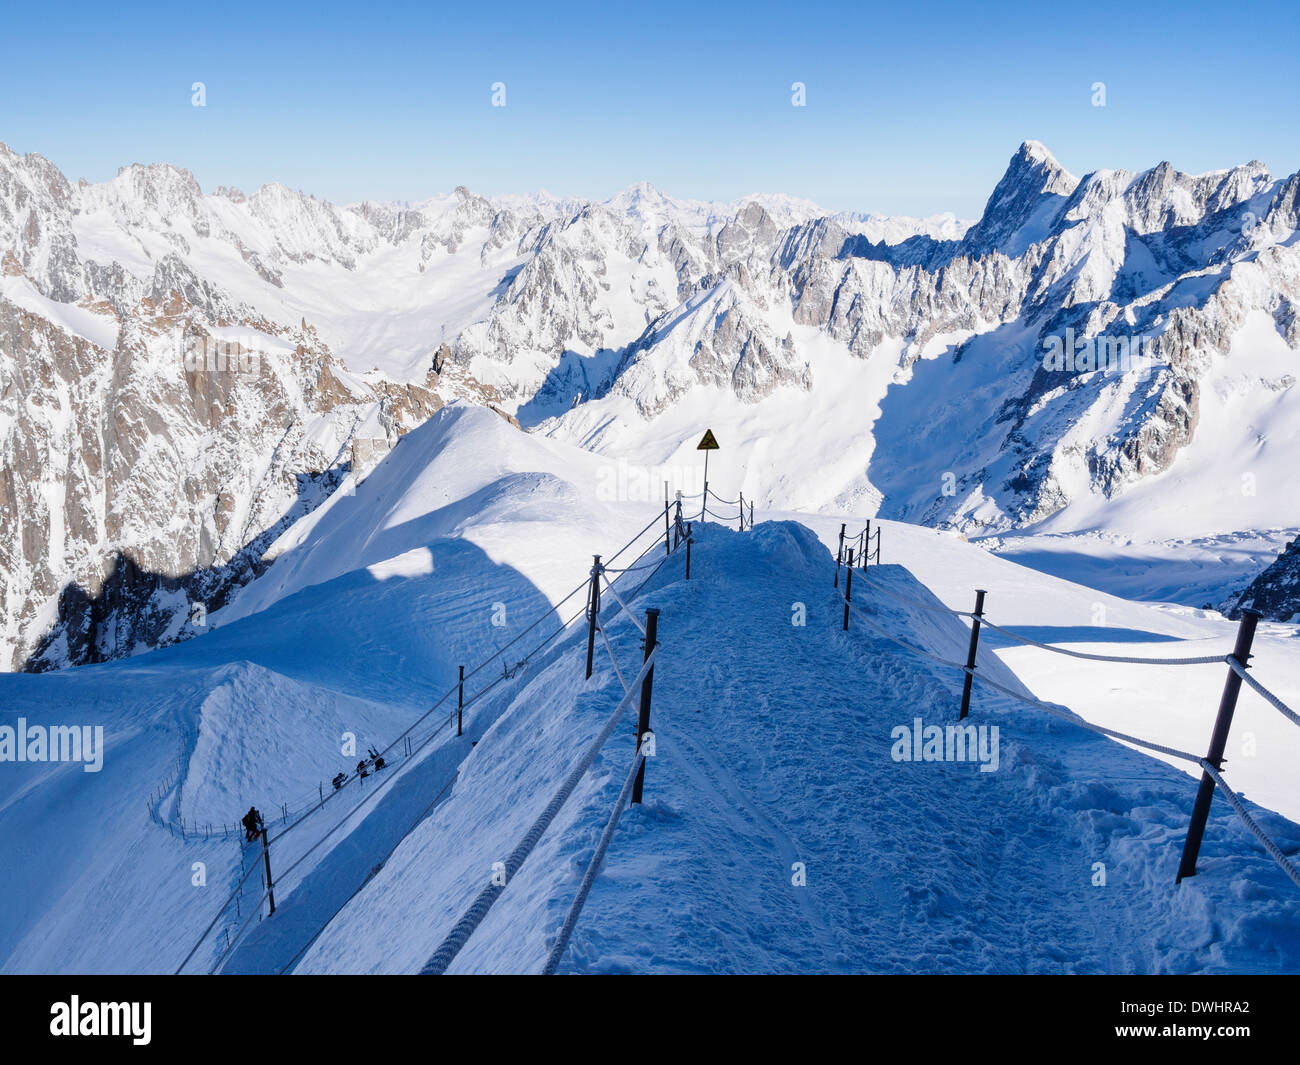 Roped path route to Vallee Blanche following arête on Aiguille du Midi. Chamonix-Mont-Blanc Rhone-Alpes France - Stock Image